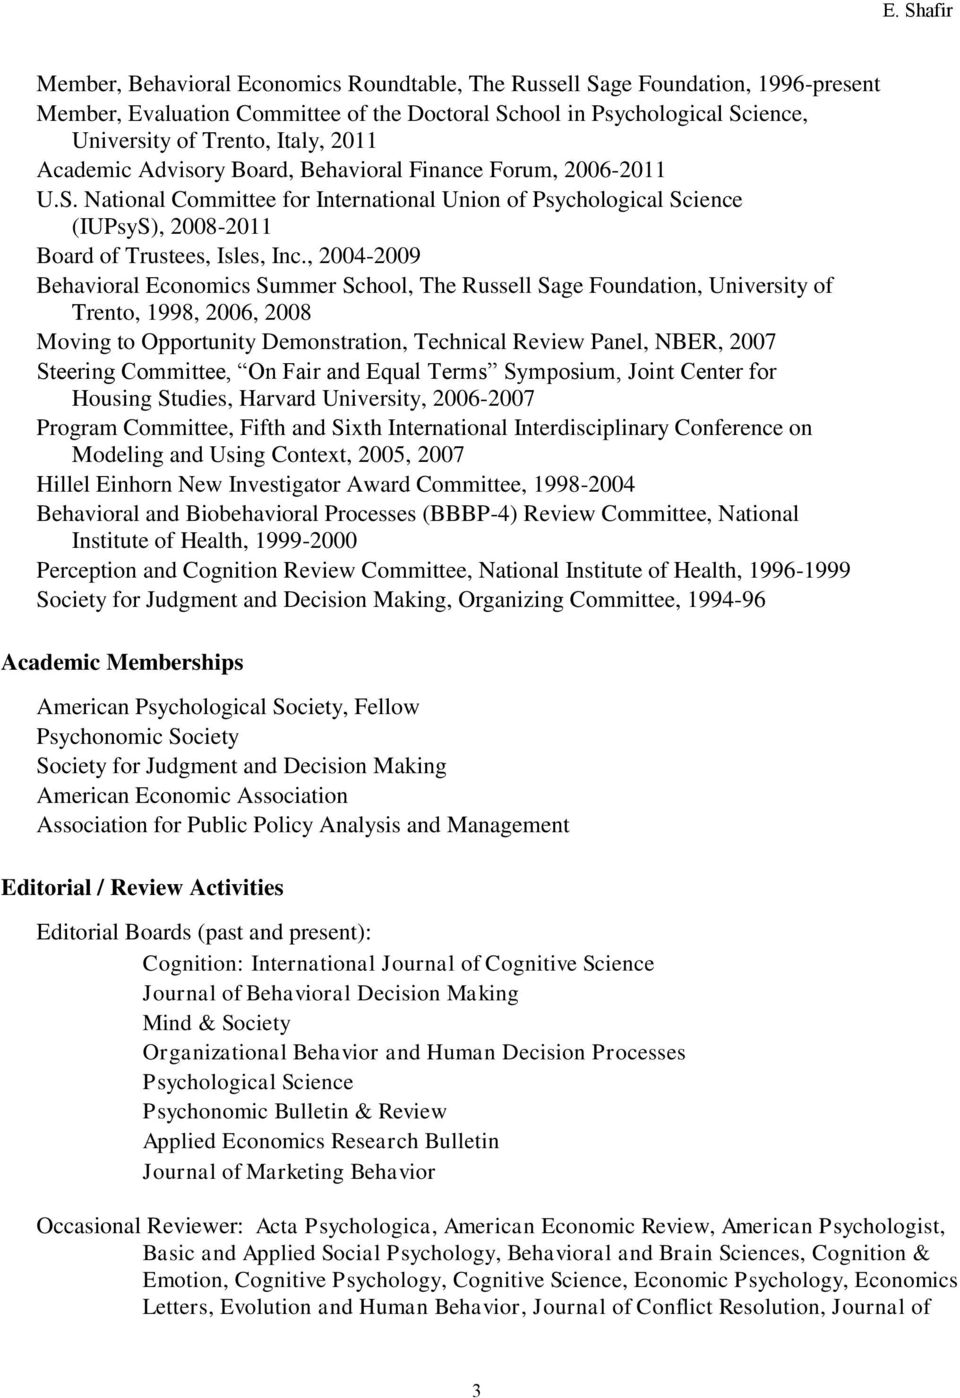 , 2004-2009 Behavioral Economics Summer School, The Russell Sage Foundation, University of Trento, 1998, 2006, 2008 Moving to Opportunity Demonstration, Technical Review Panel, NBER, 2007 Steering